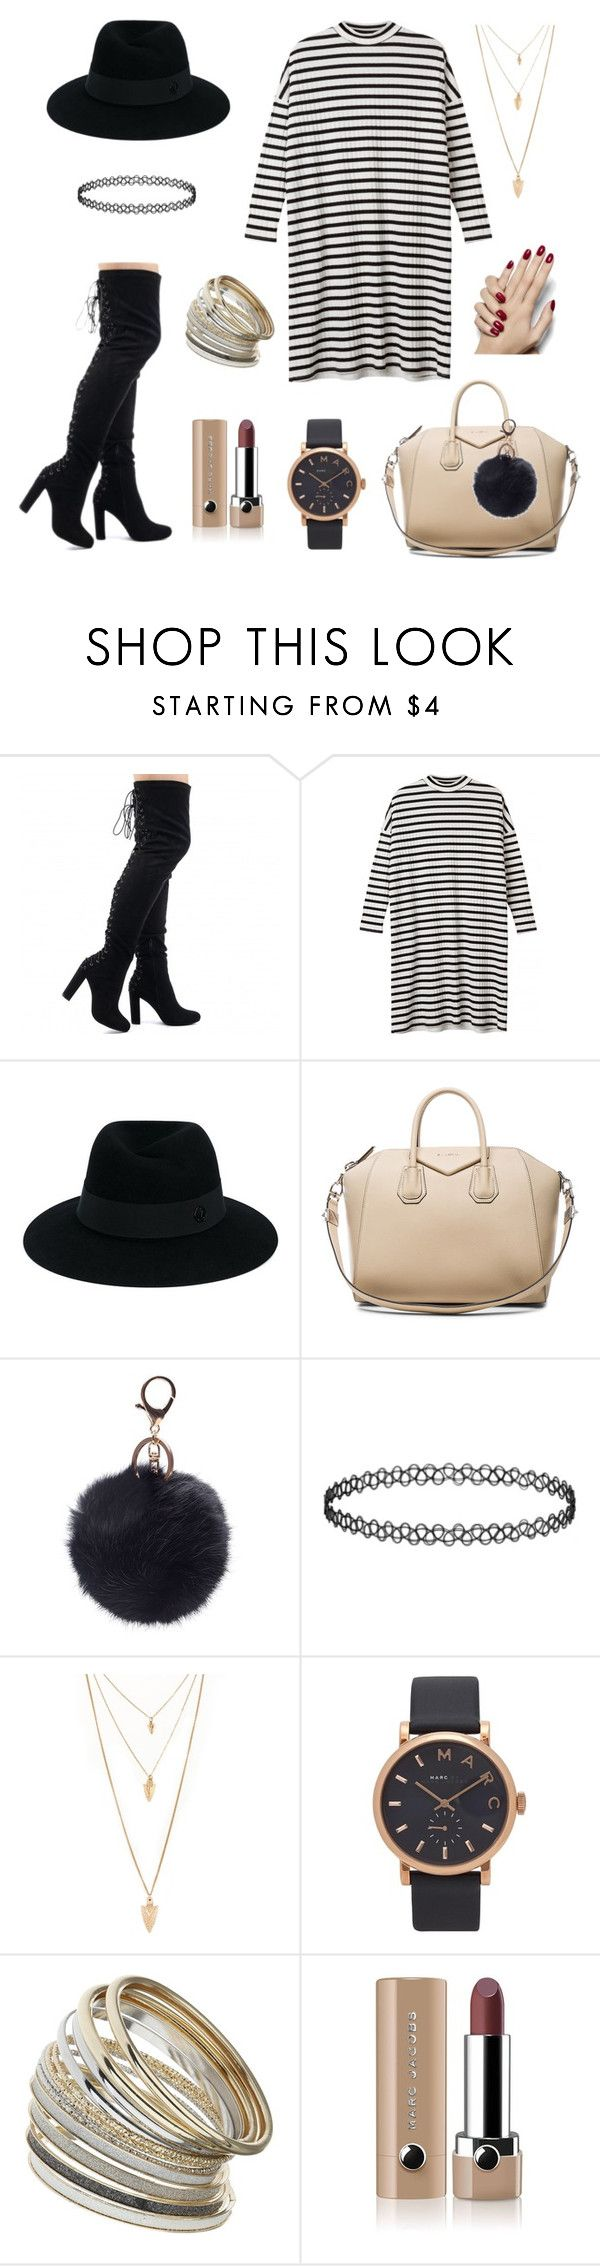 """""""Cashual yet classy look. Fur pom available on styleloft.dk"""" by shop-styleloft on Polyvore featuring Monki, Maison Michel, Givenchy, Forever 21, Marc by Marc Jacobs, Miss Selfridge and Marc Jacobs"""